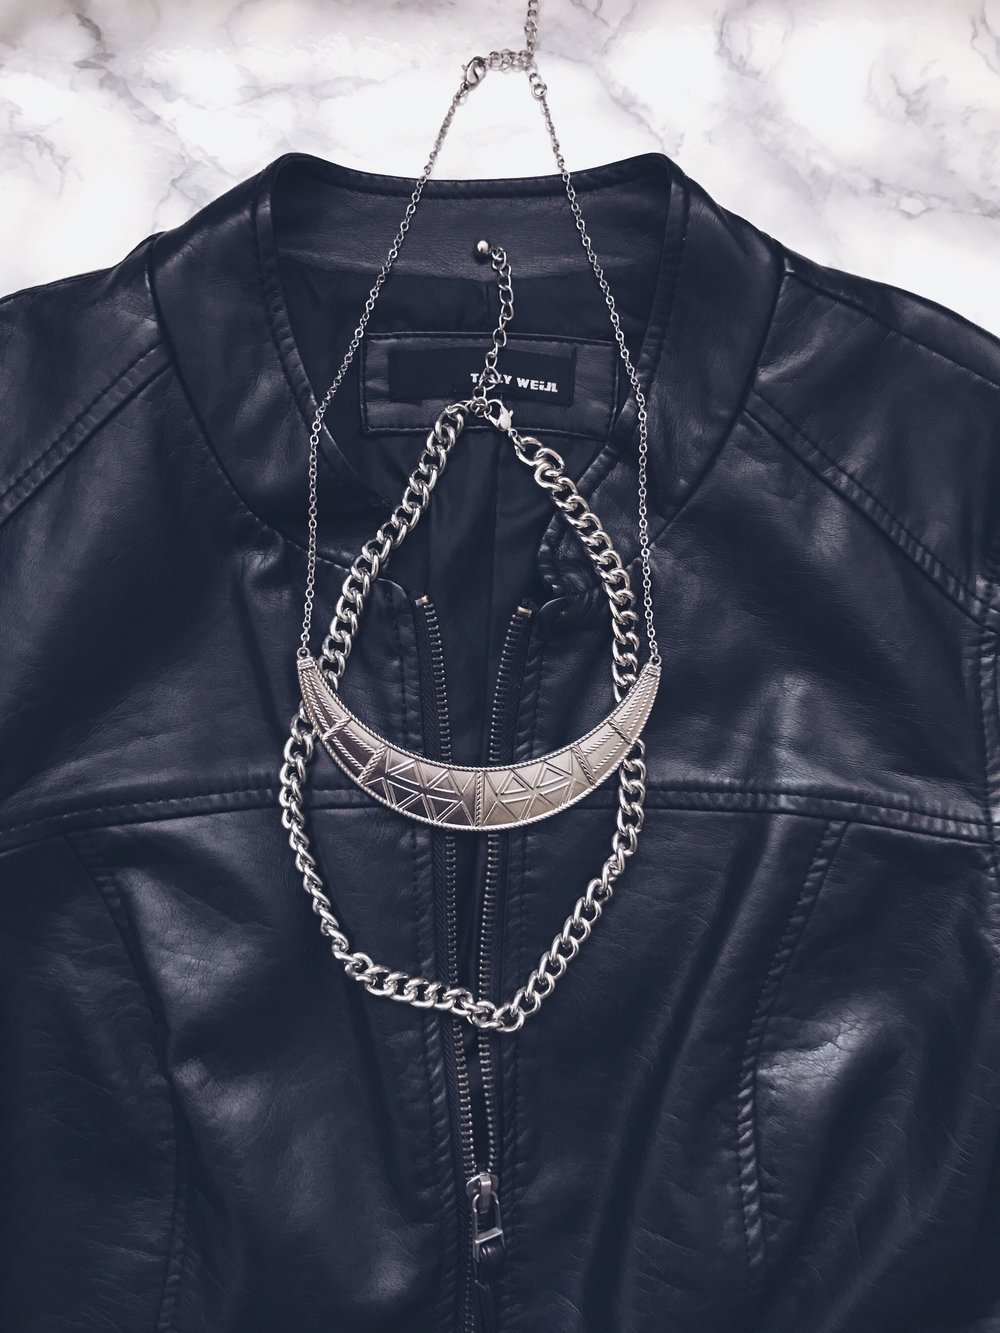 Jacket: Tally Weijl    Necklace: H&M    Chain Necklace: Terranova